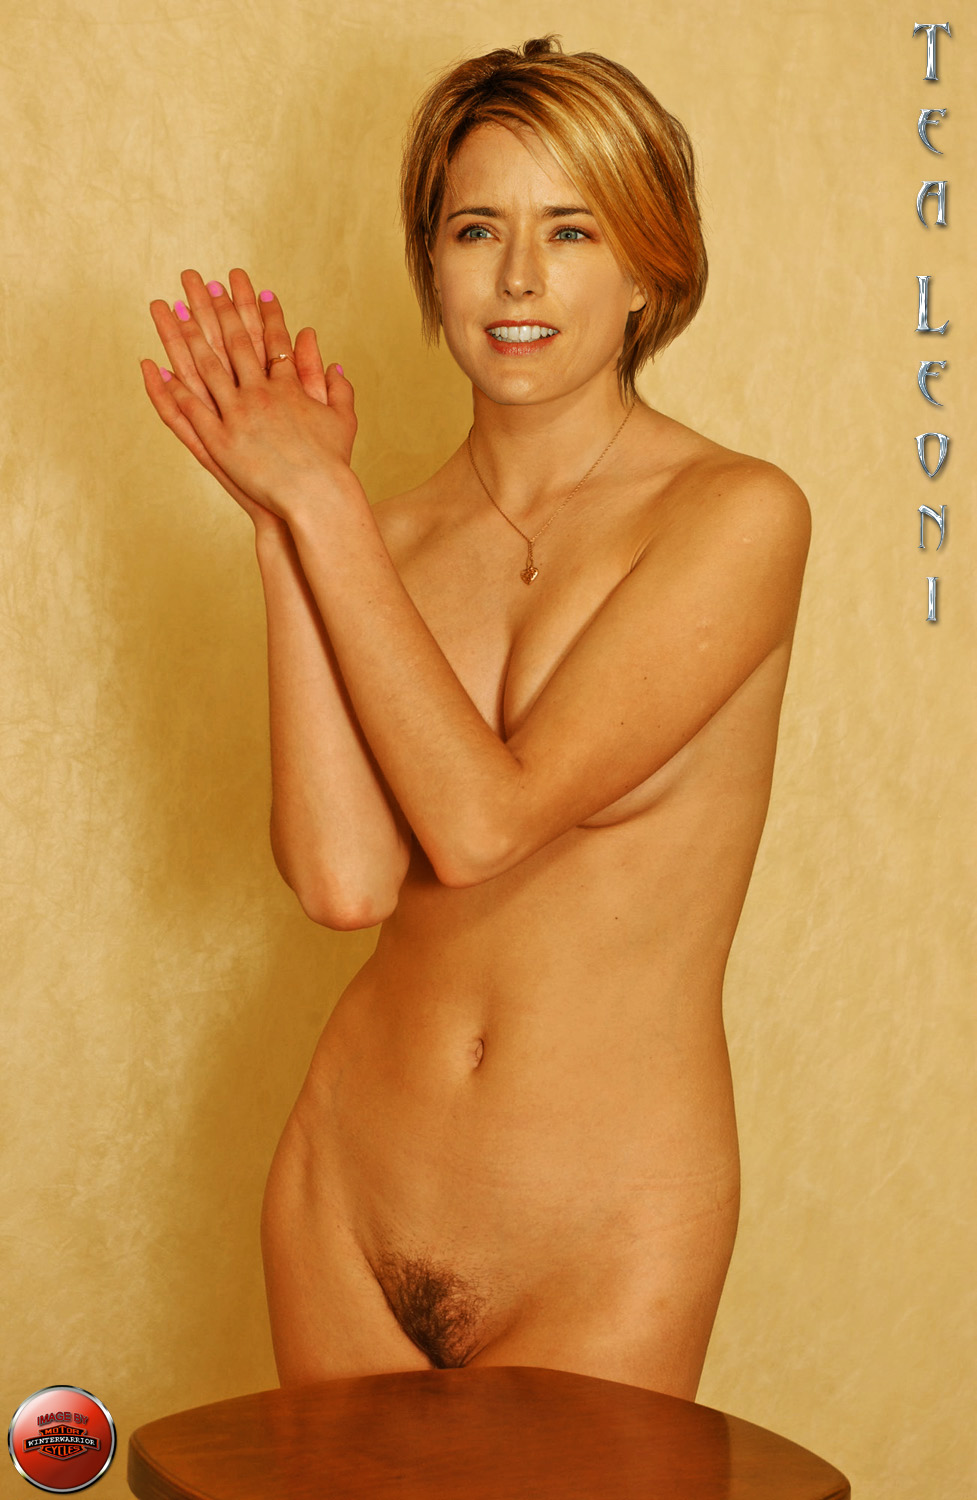 Tea leoni sex video